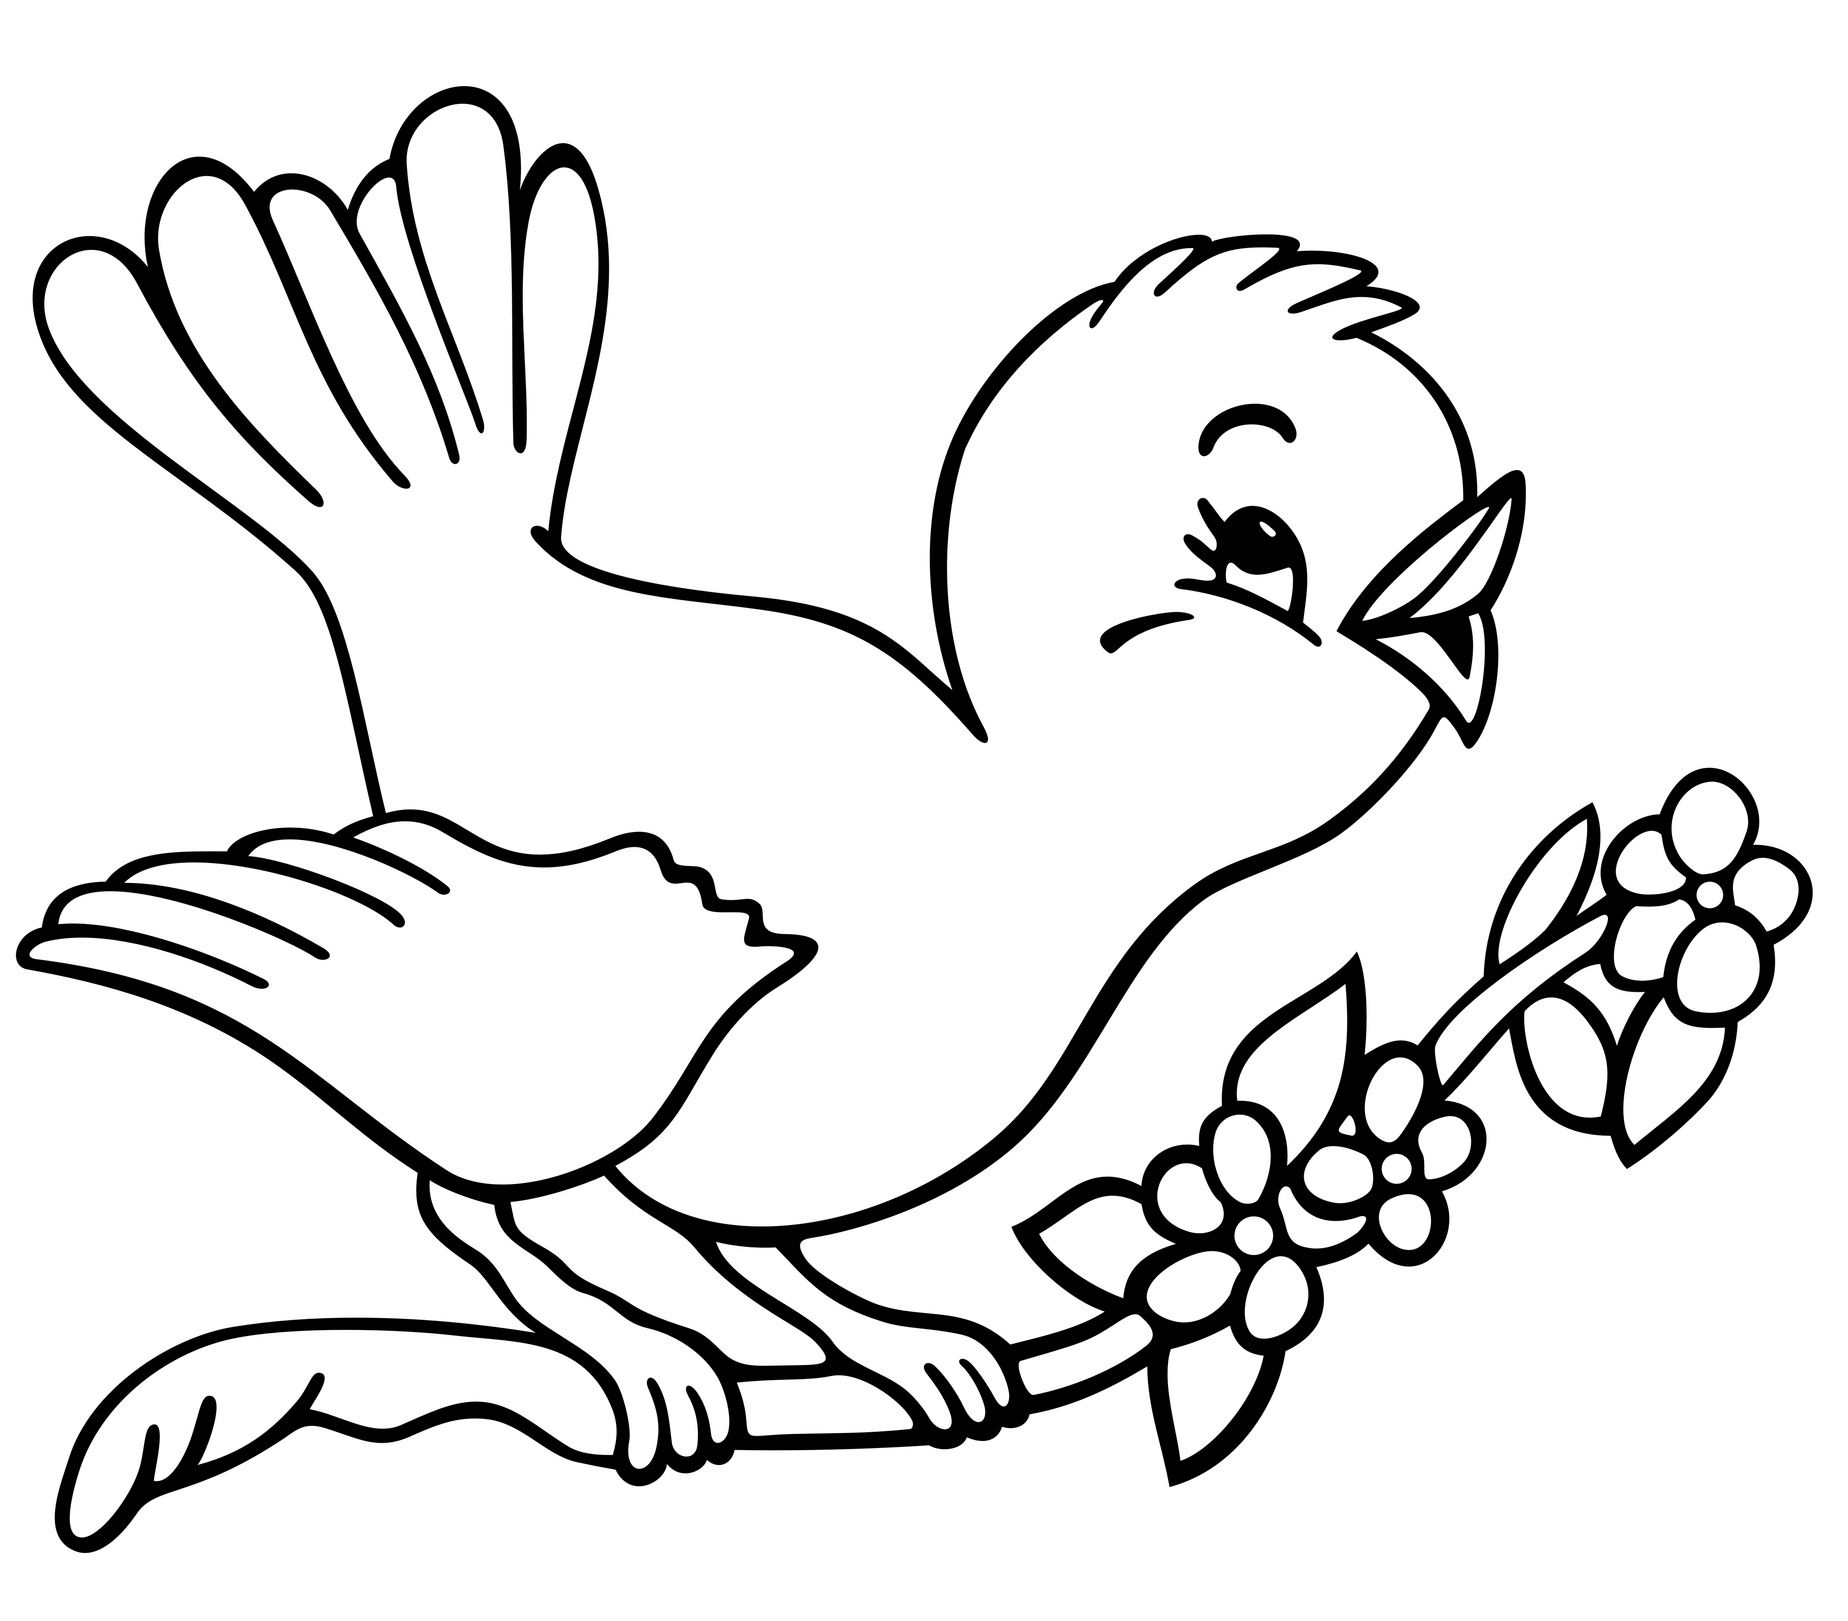 Free Bird Coloring Pages For Kids Animals Bird Coloring Pages Animal Coloring Pages Spring Coloring Pages